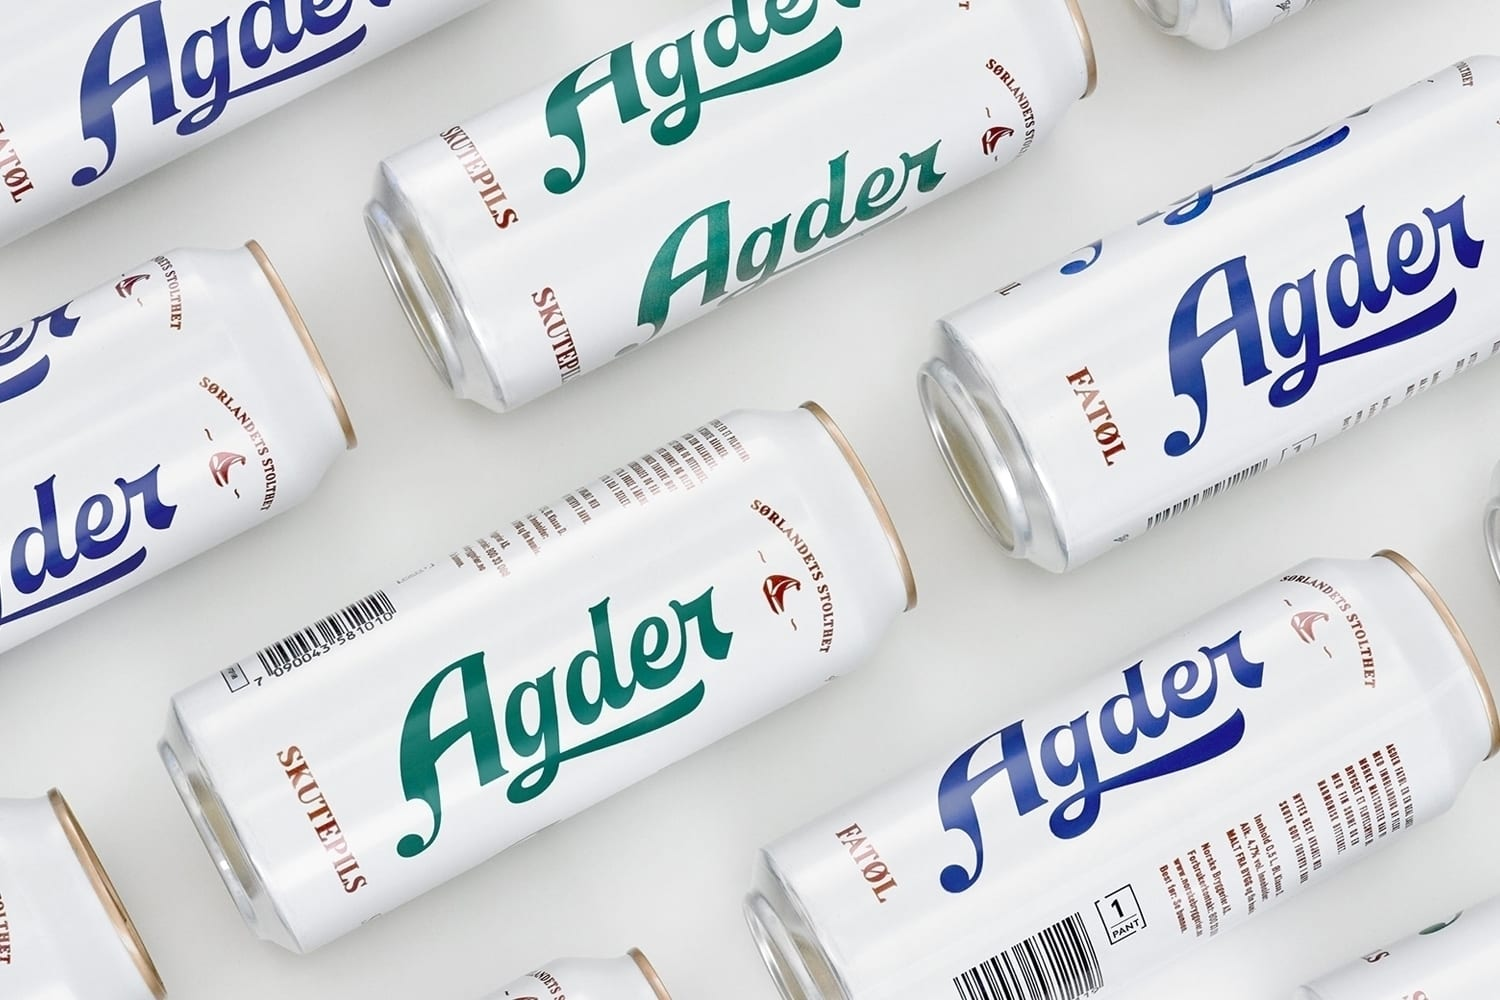 05 Agder Bryggeri Local Beer Branding Packaging Frank Norway BPO - Ach, tie obaly – Agder Bryggeri by Frank